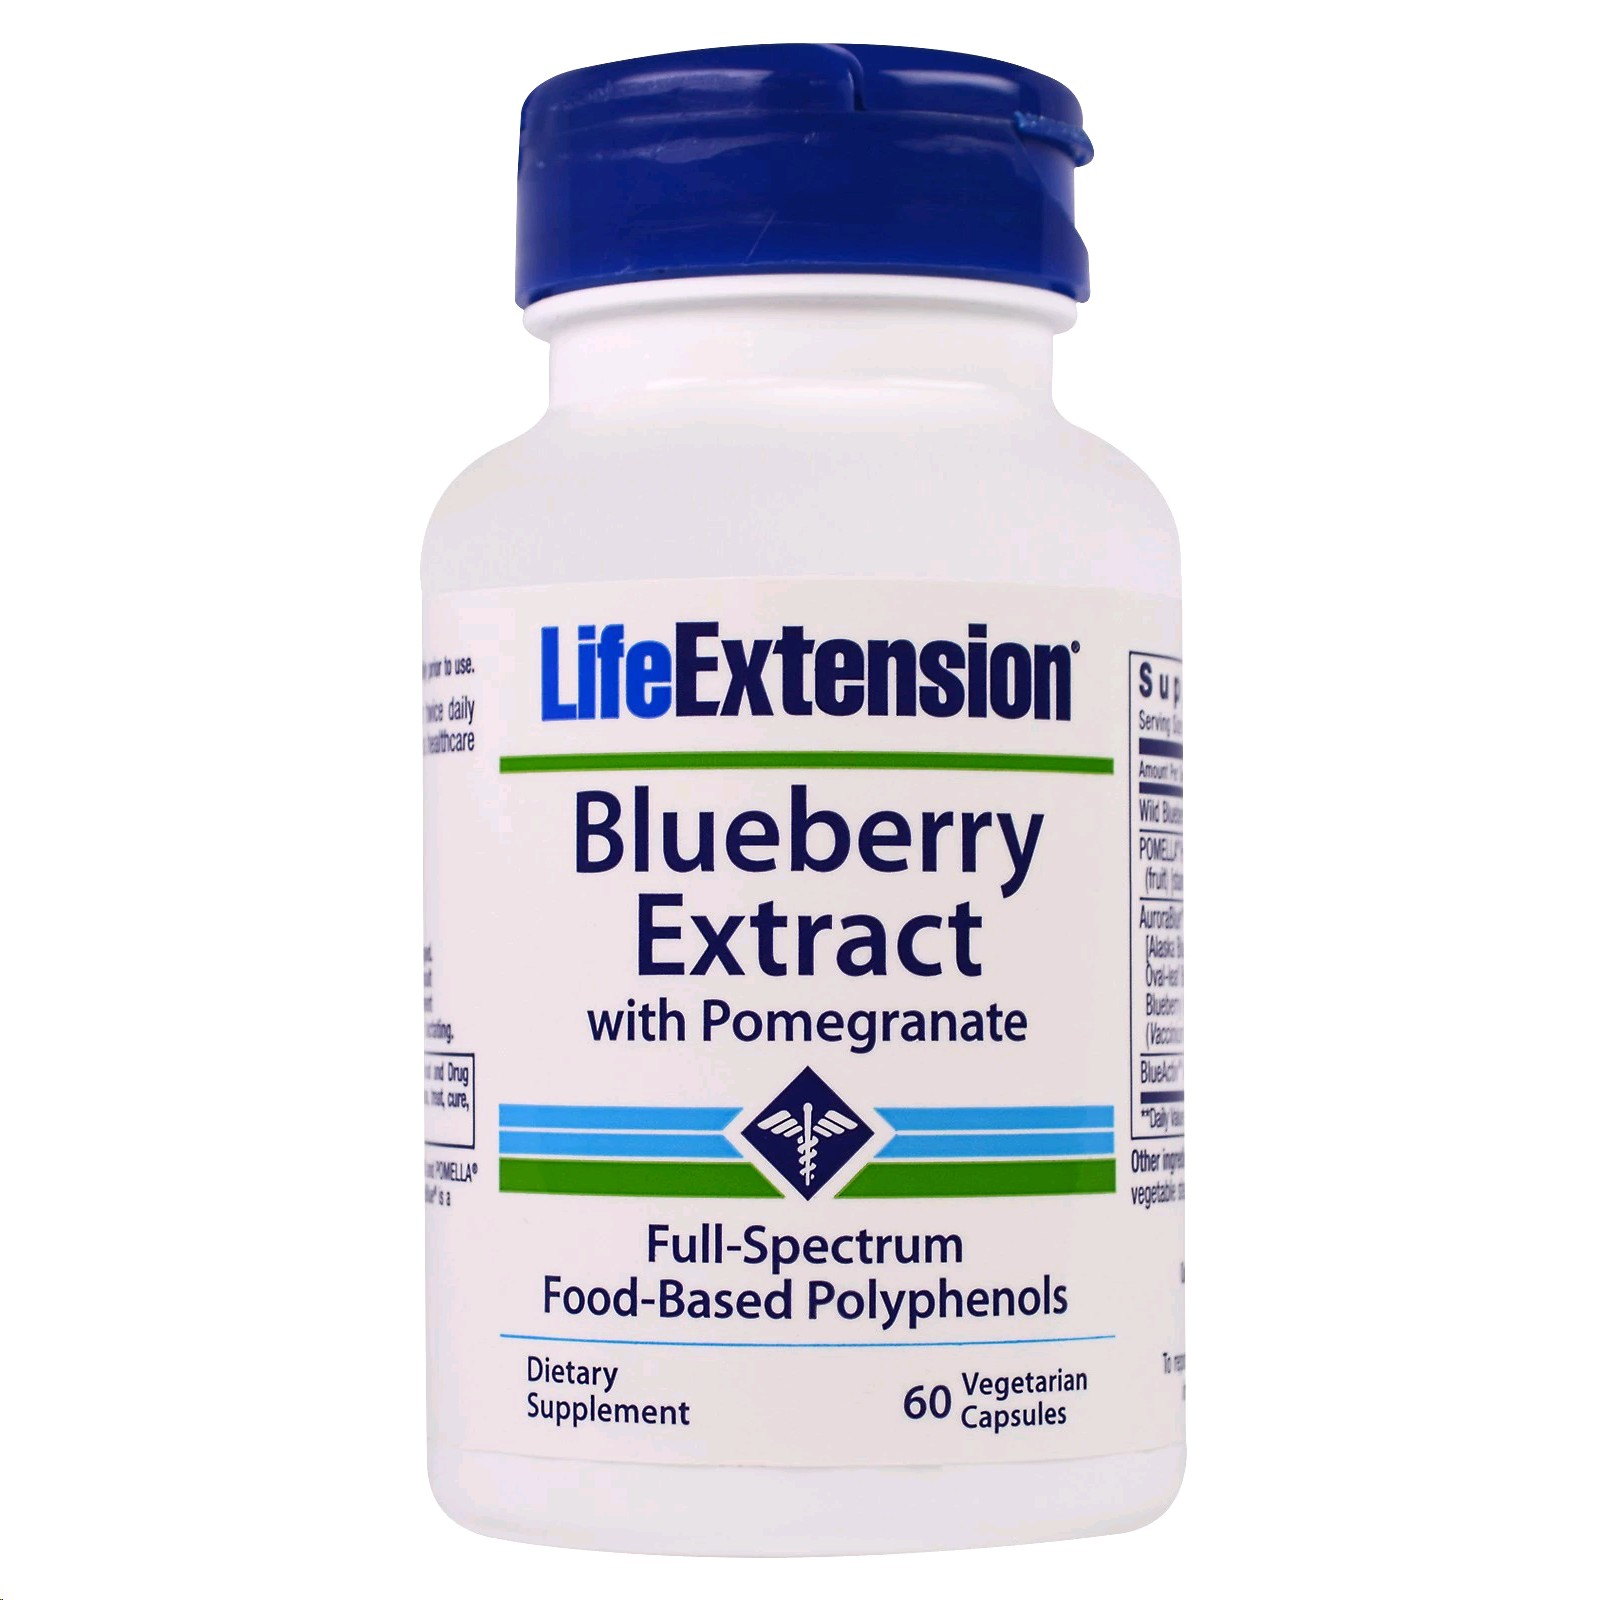 LIFE EXTENSION BLUEBERRY EXTRACT WITH POMEGRANATE 60 CAPSULES